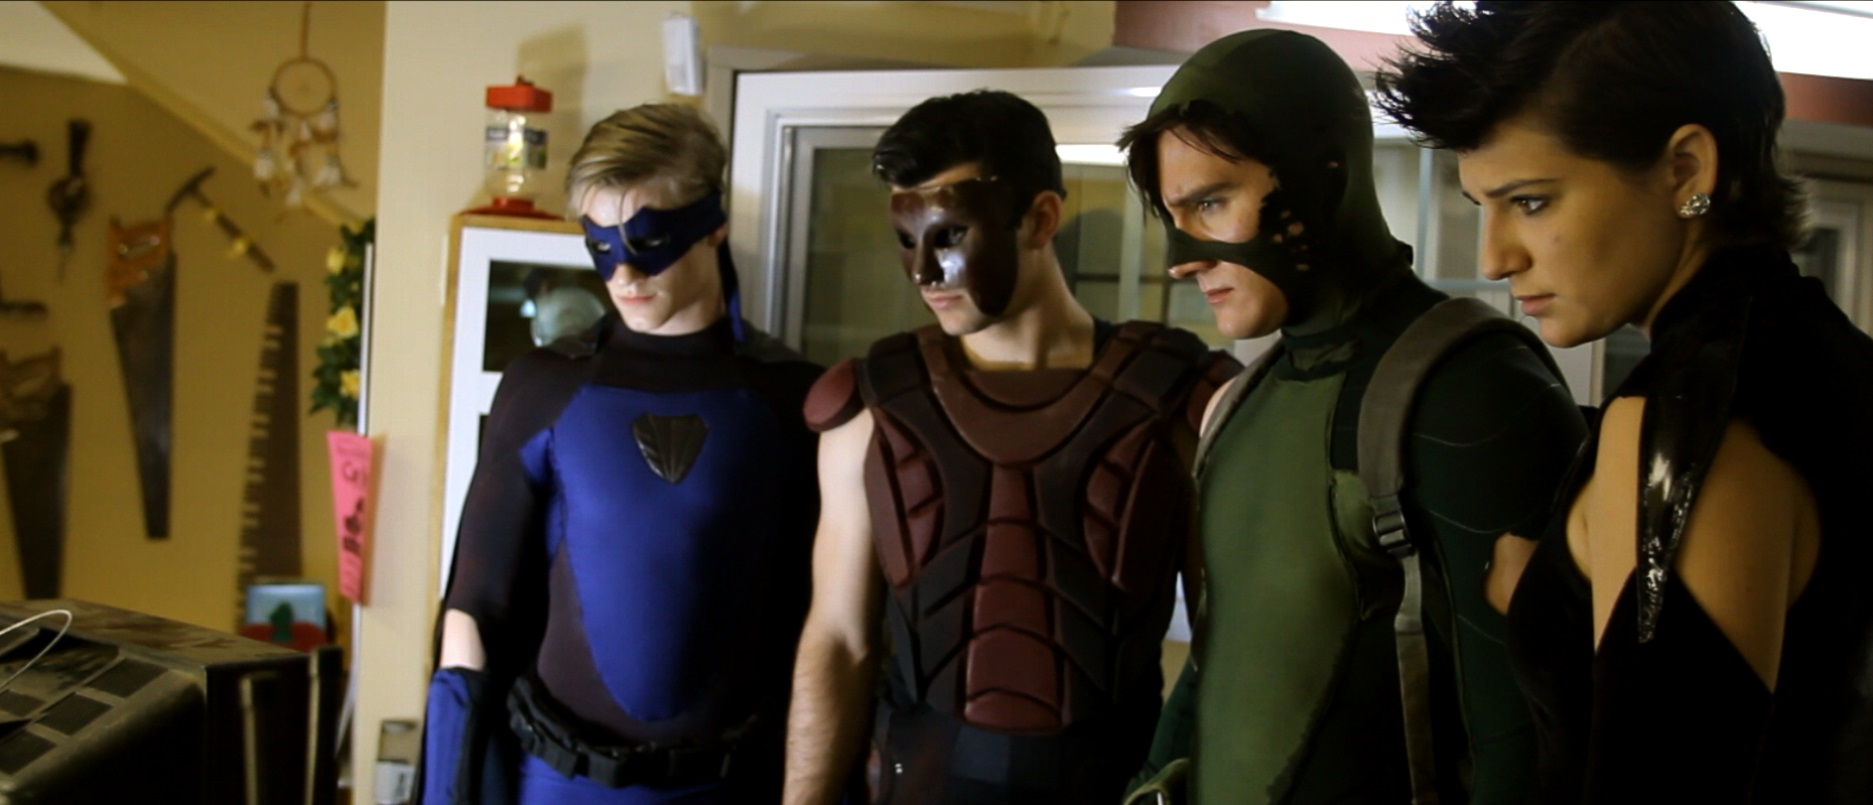 The superheroes - Cutthroat (Lucas Till), The Wall (Lee Valmassy), Charge (Jason Trost) and Shadow (Sophie Merkley) in All Superheroes Must Die (2011)